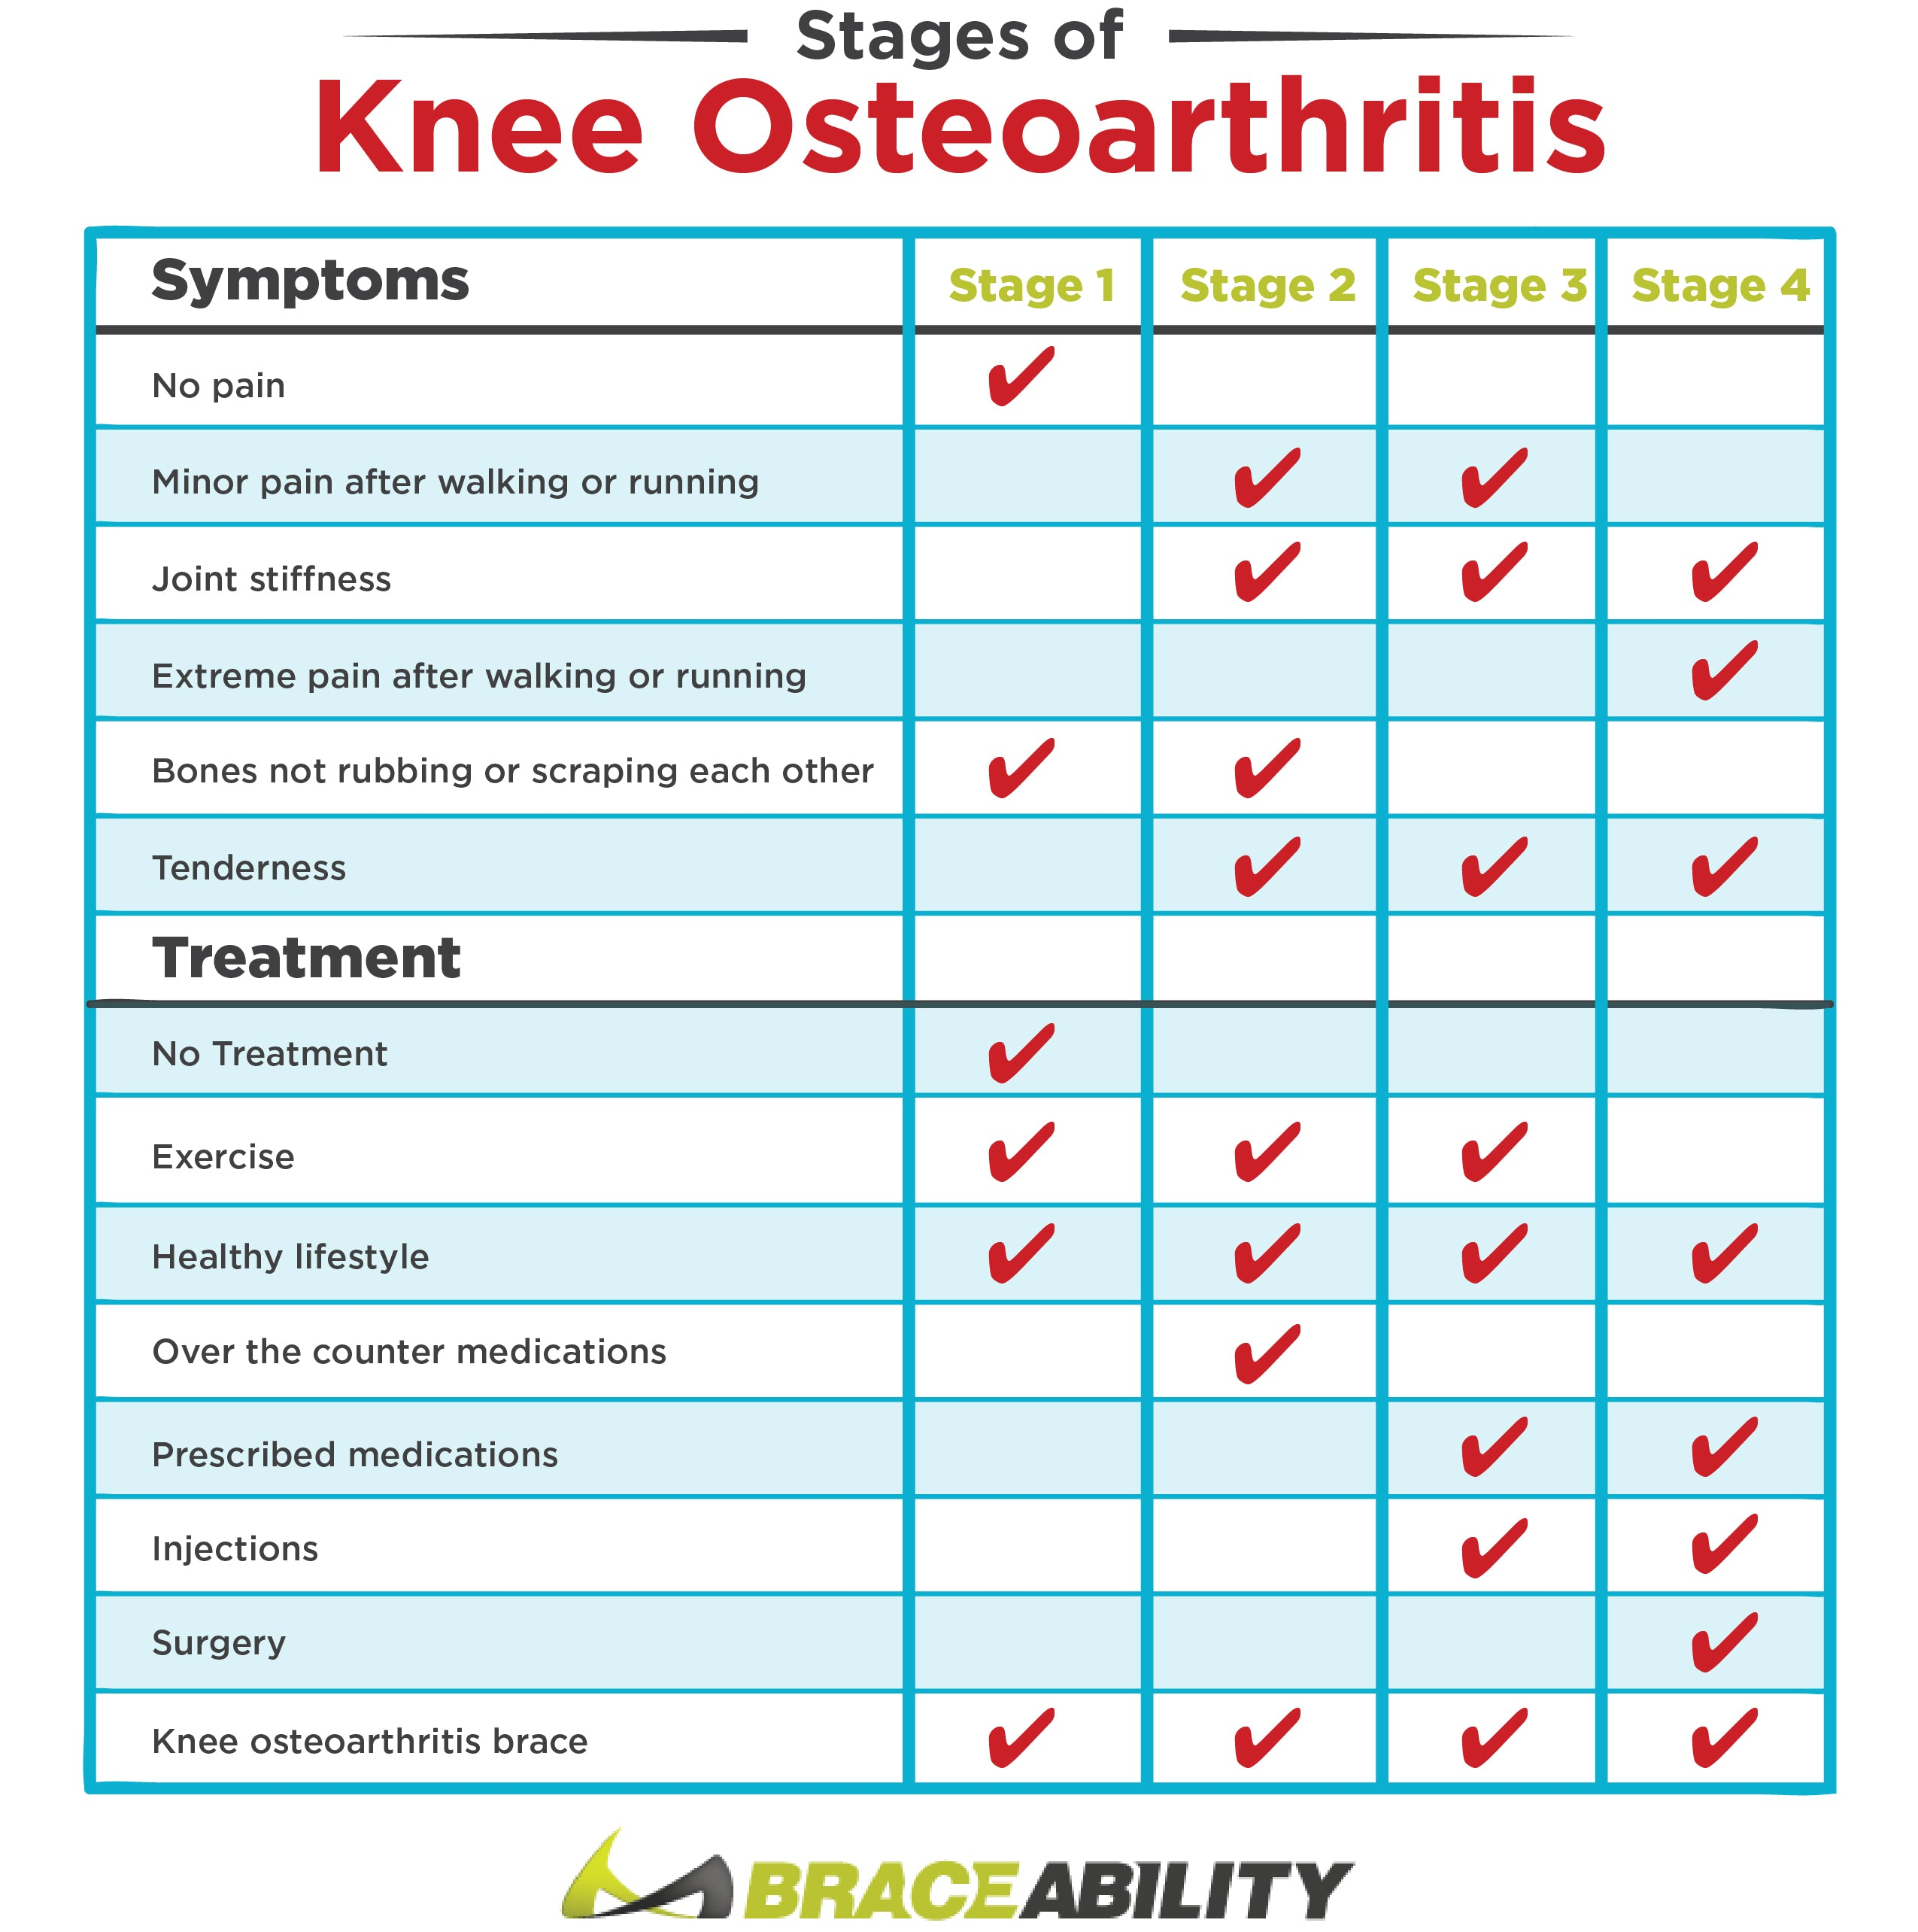 learn about the symptoms of knee osteoarthritis during each stage